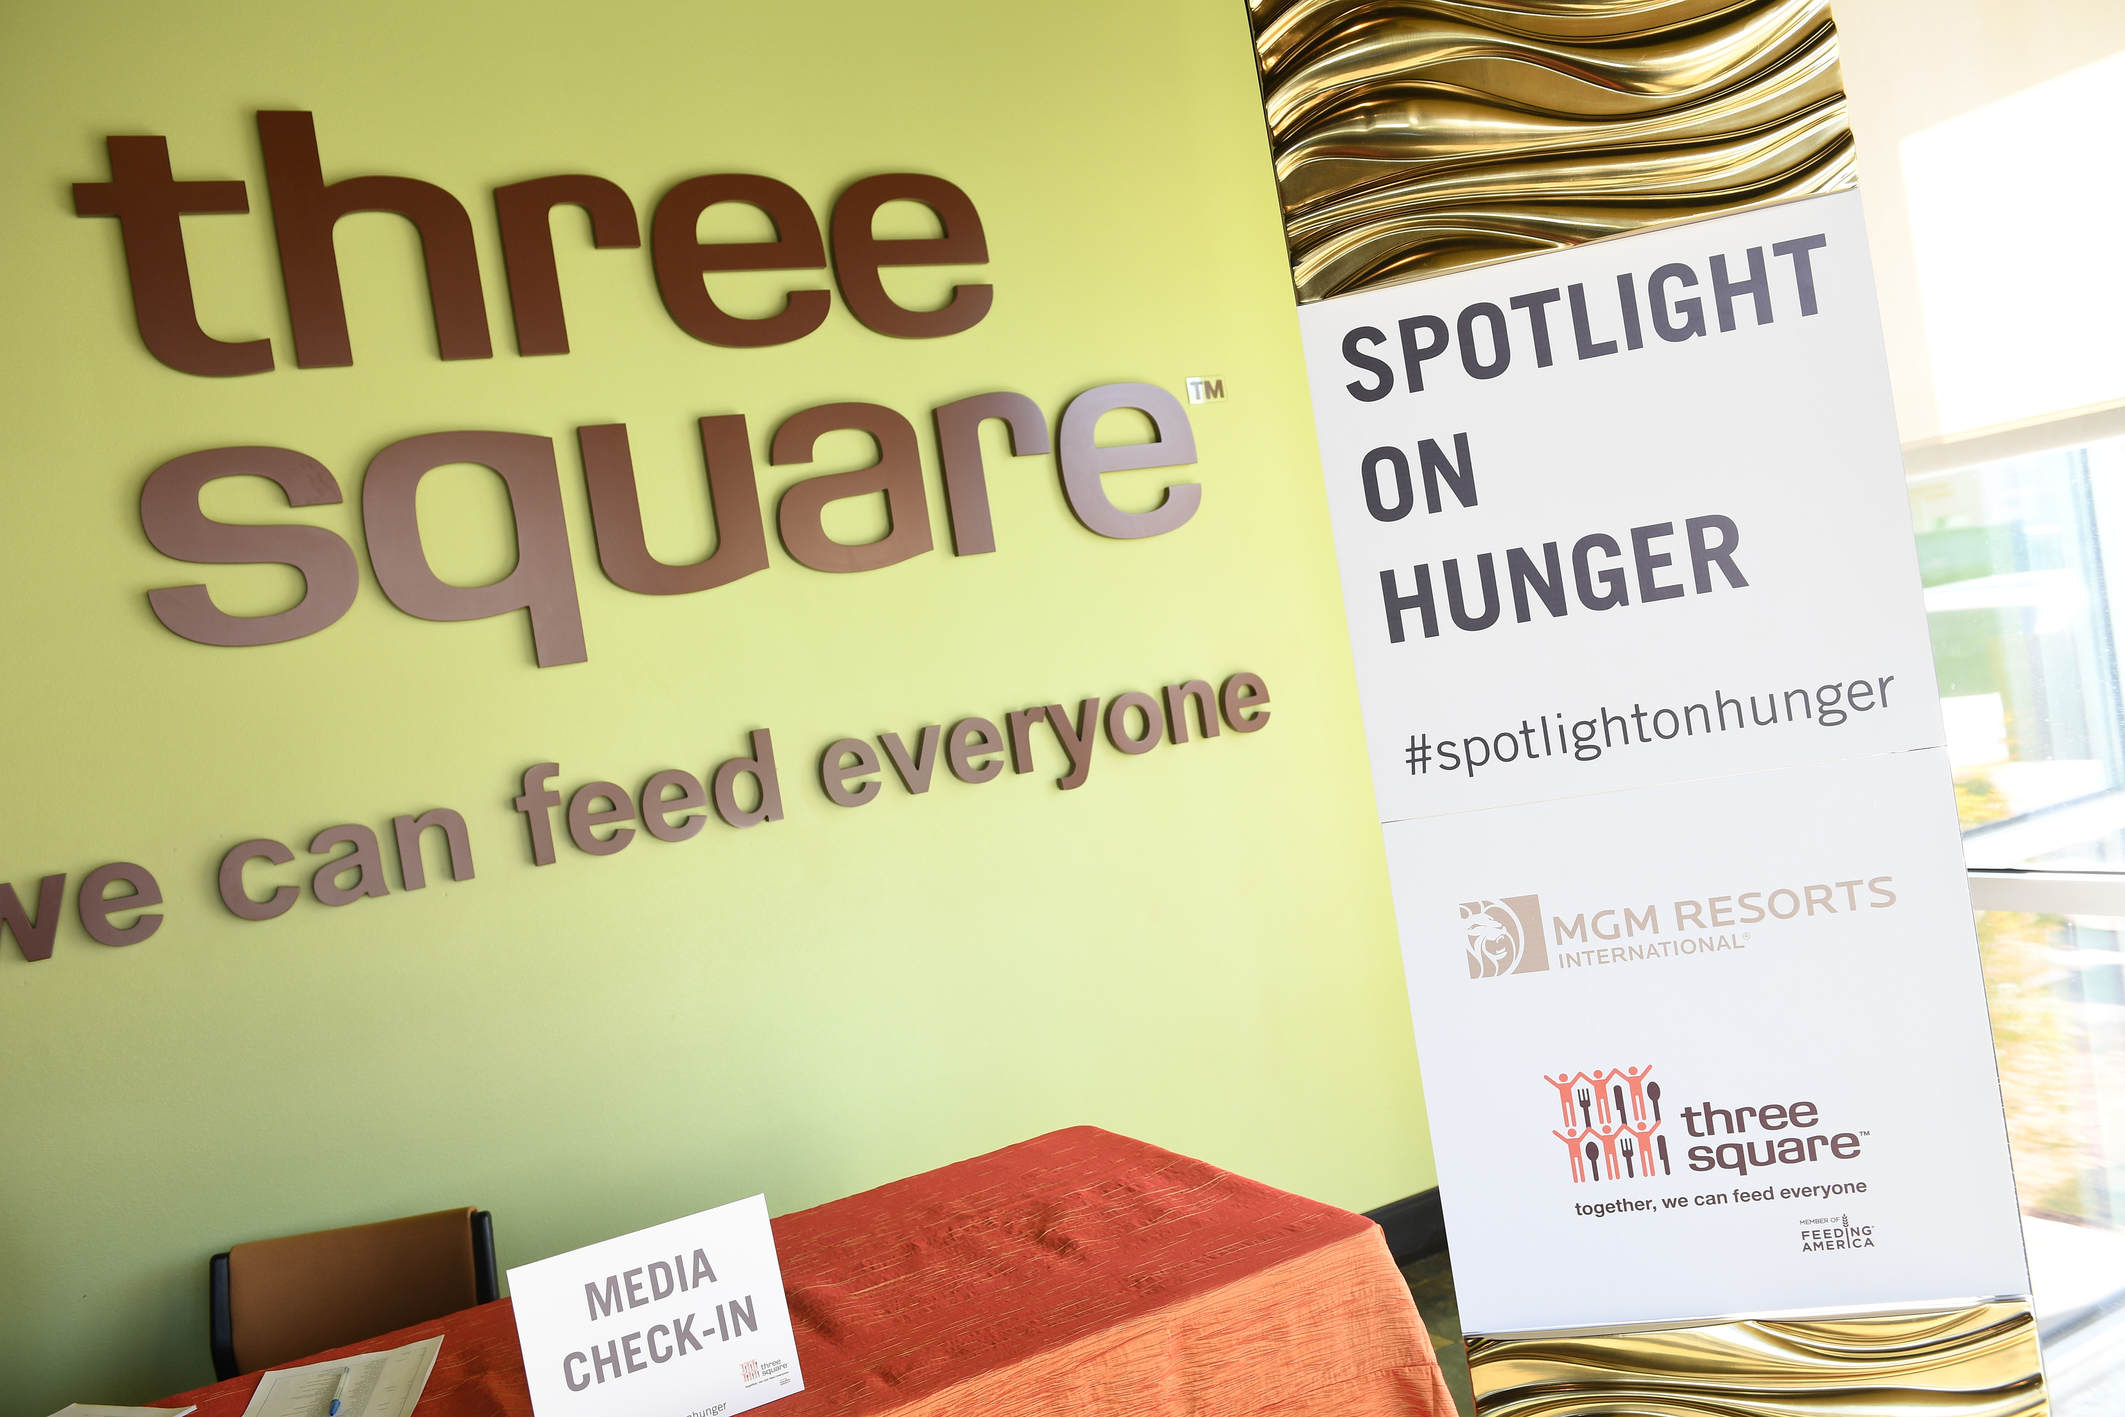 MGM Resorts Partners with Three Square Food Bank to Fight Hunger